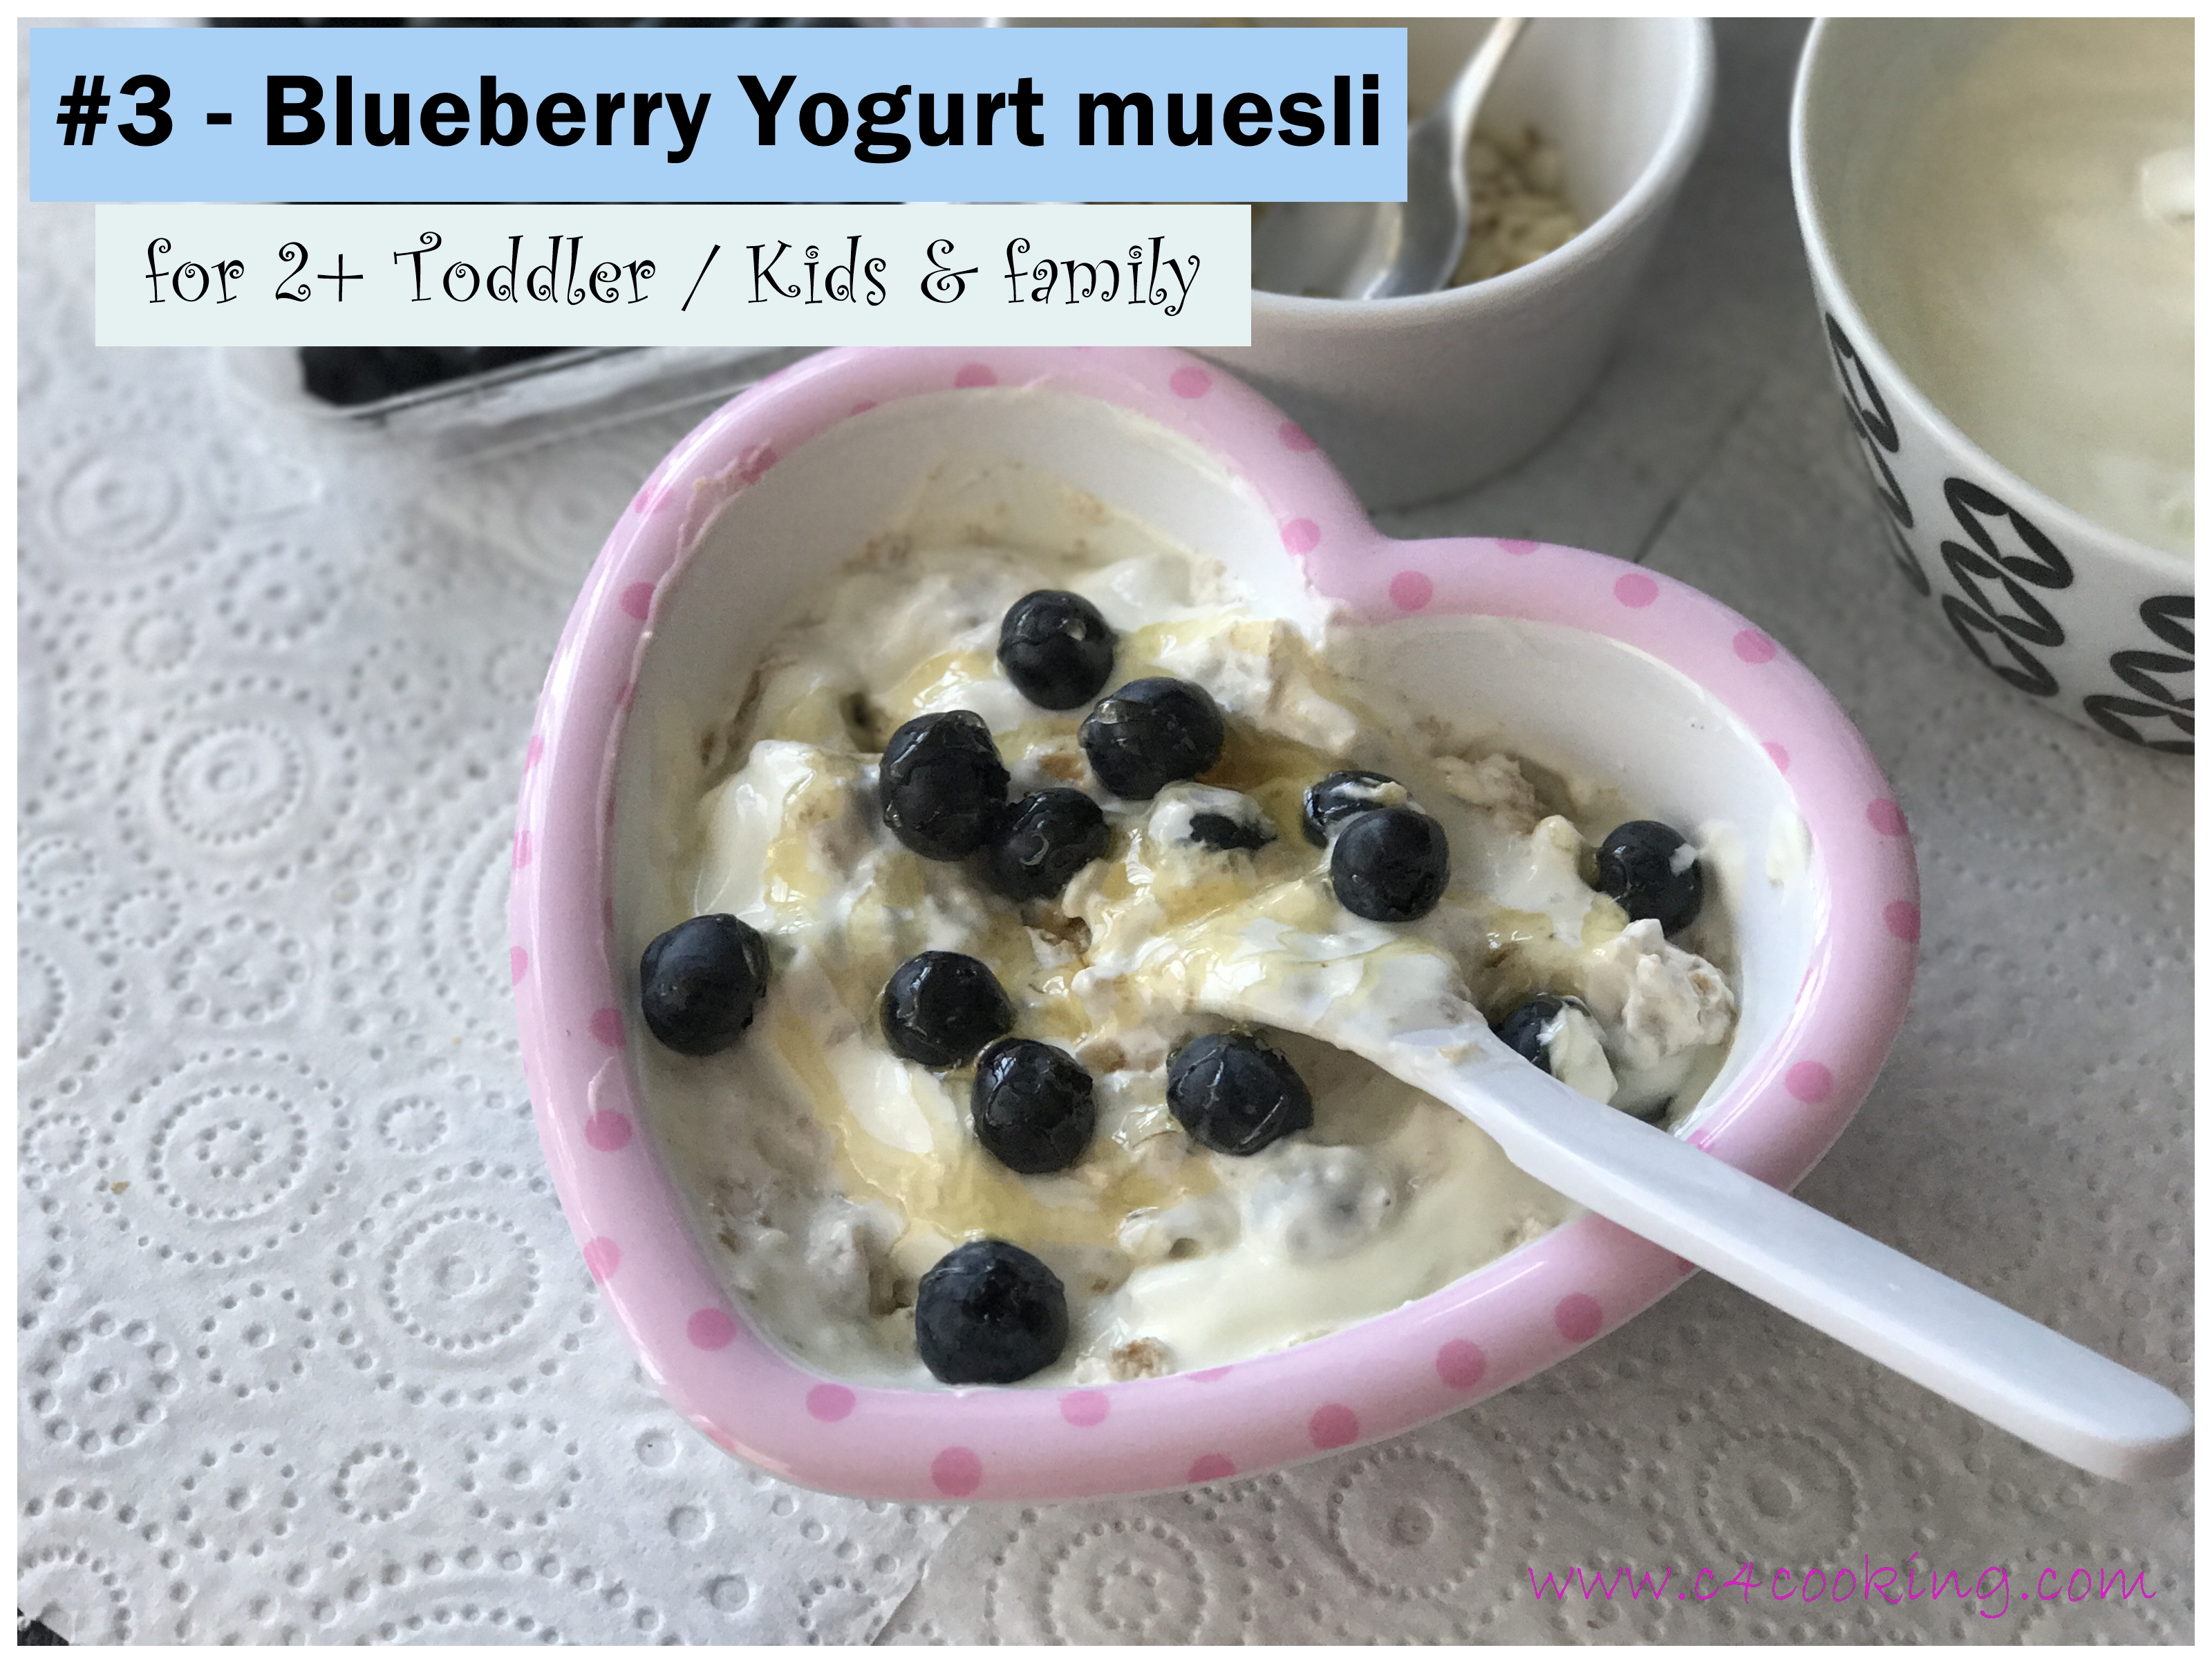 Blueberry Yogurt muesli, breakfast muesli recipes